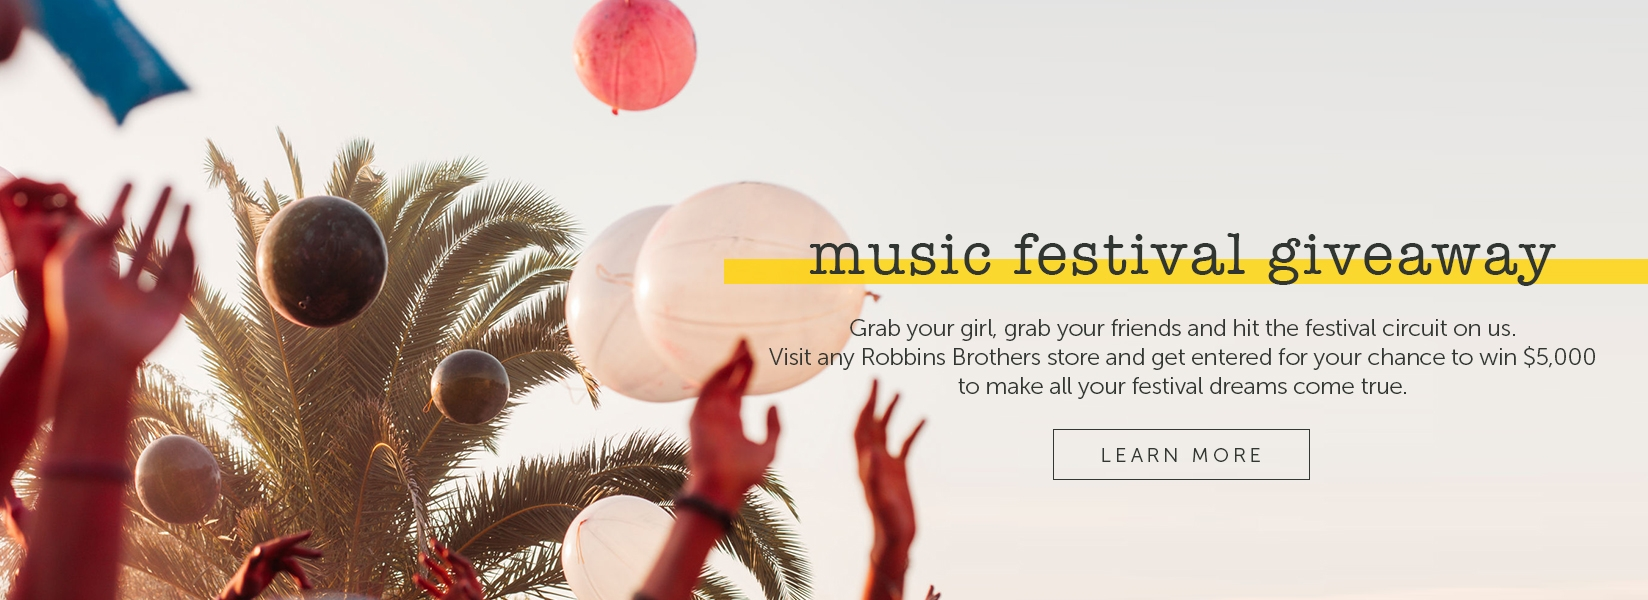 Music Festival Giveaway